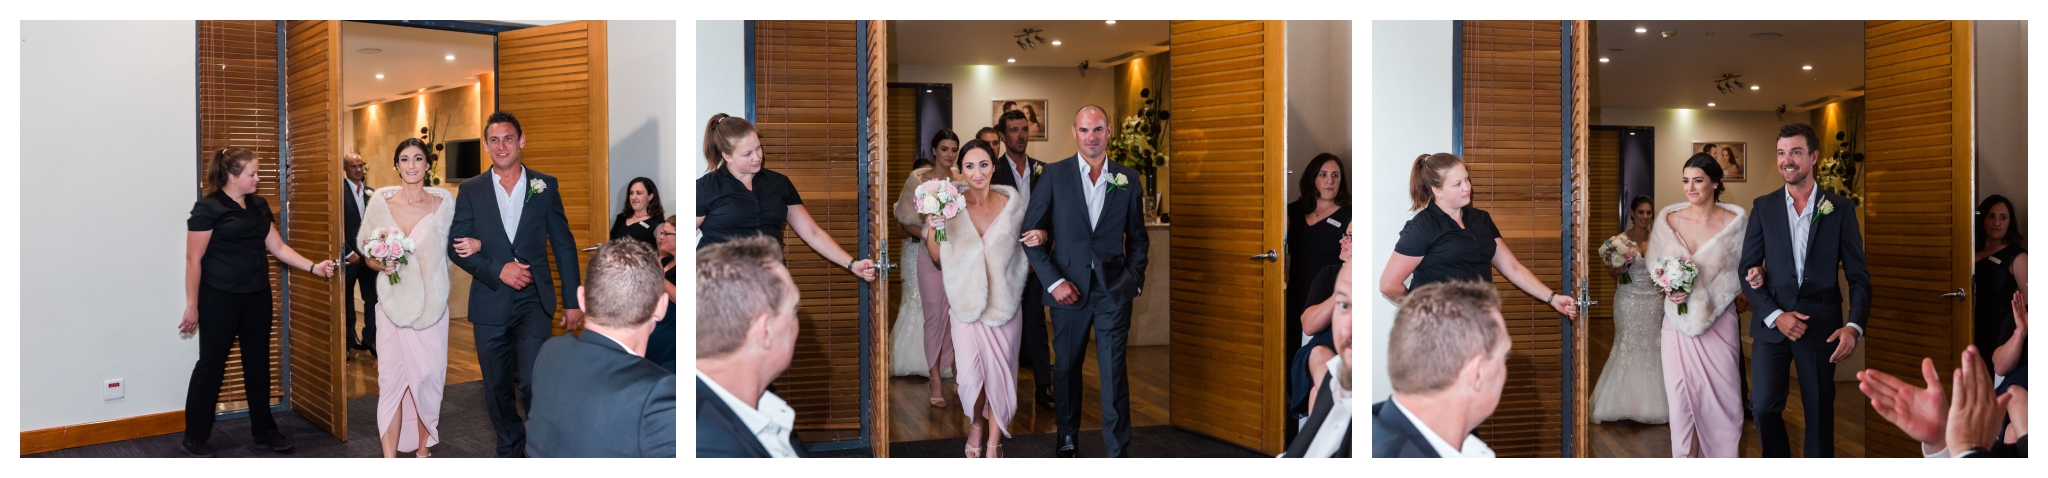 Bridal Party Entrance Mandurah Quay